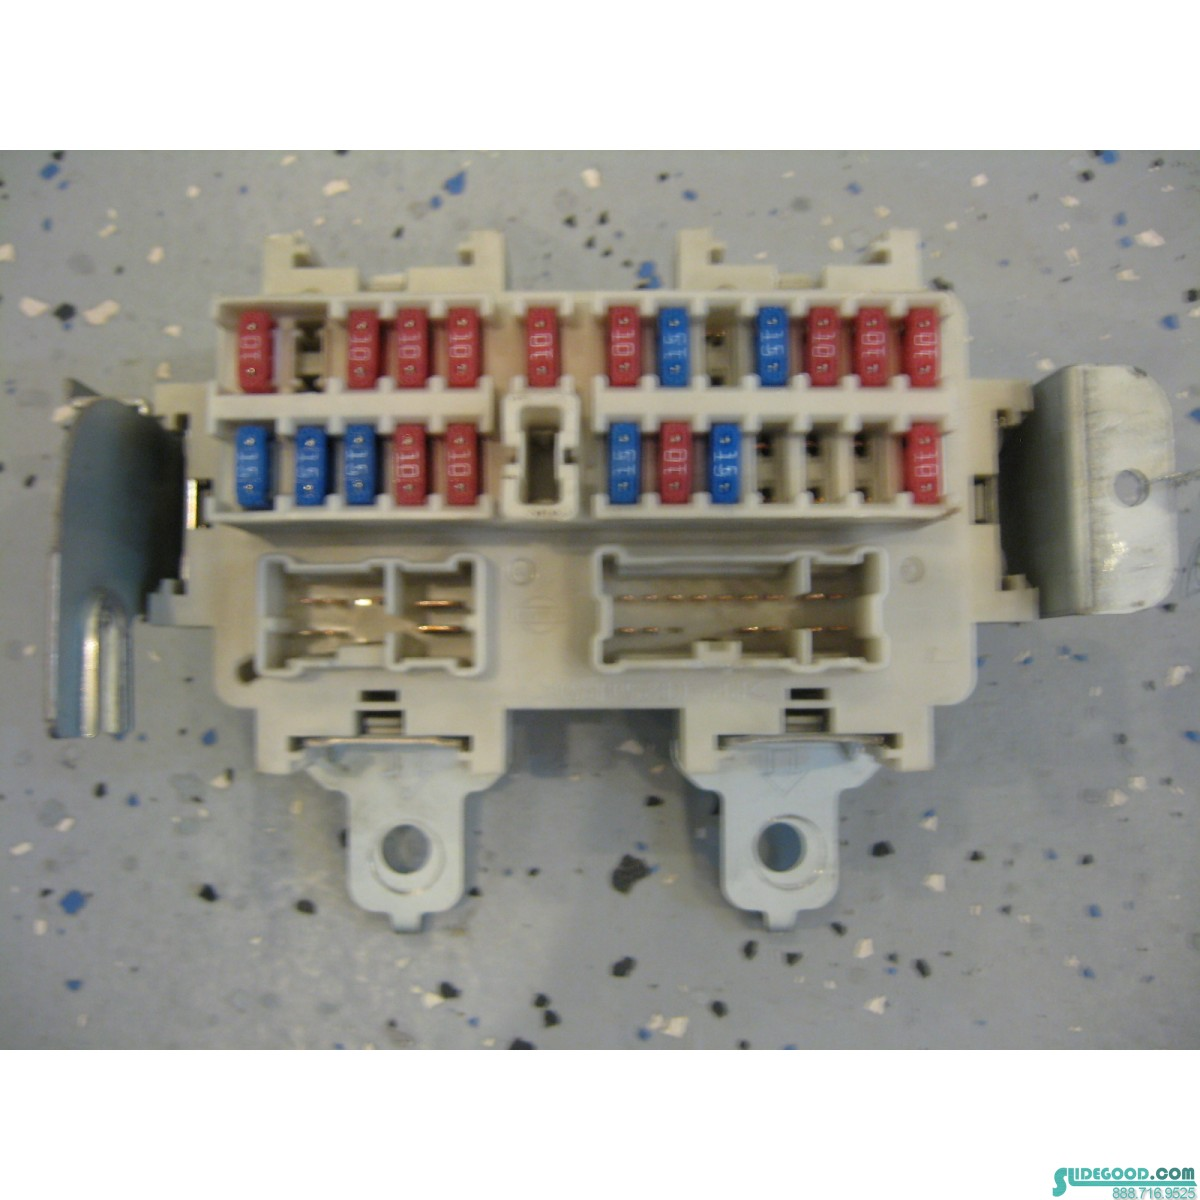 hight resolution of 04 nissan 350z interior fuse box am600 nice interior fuse box off a04 nissan 350z interior